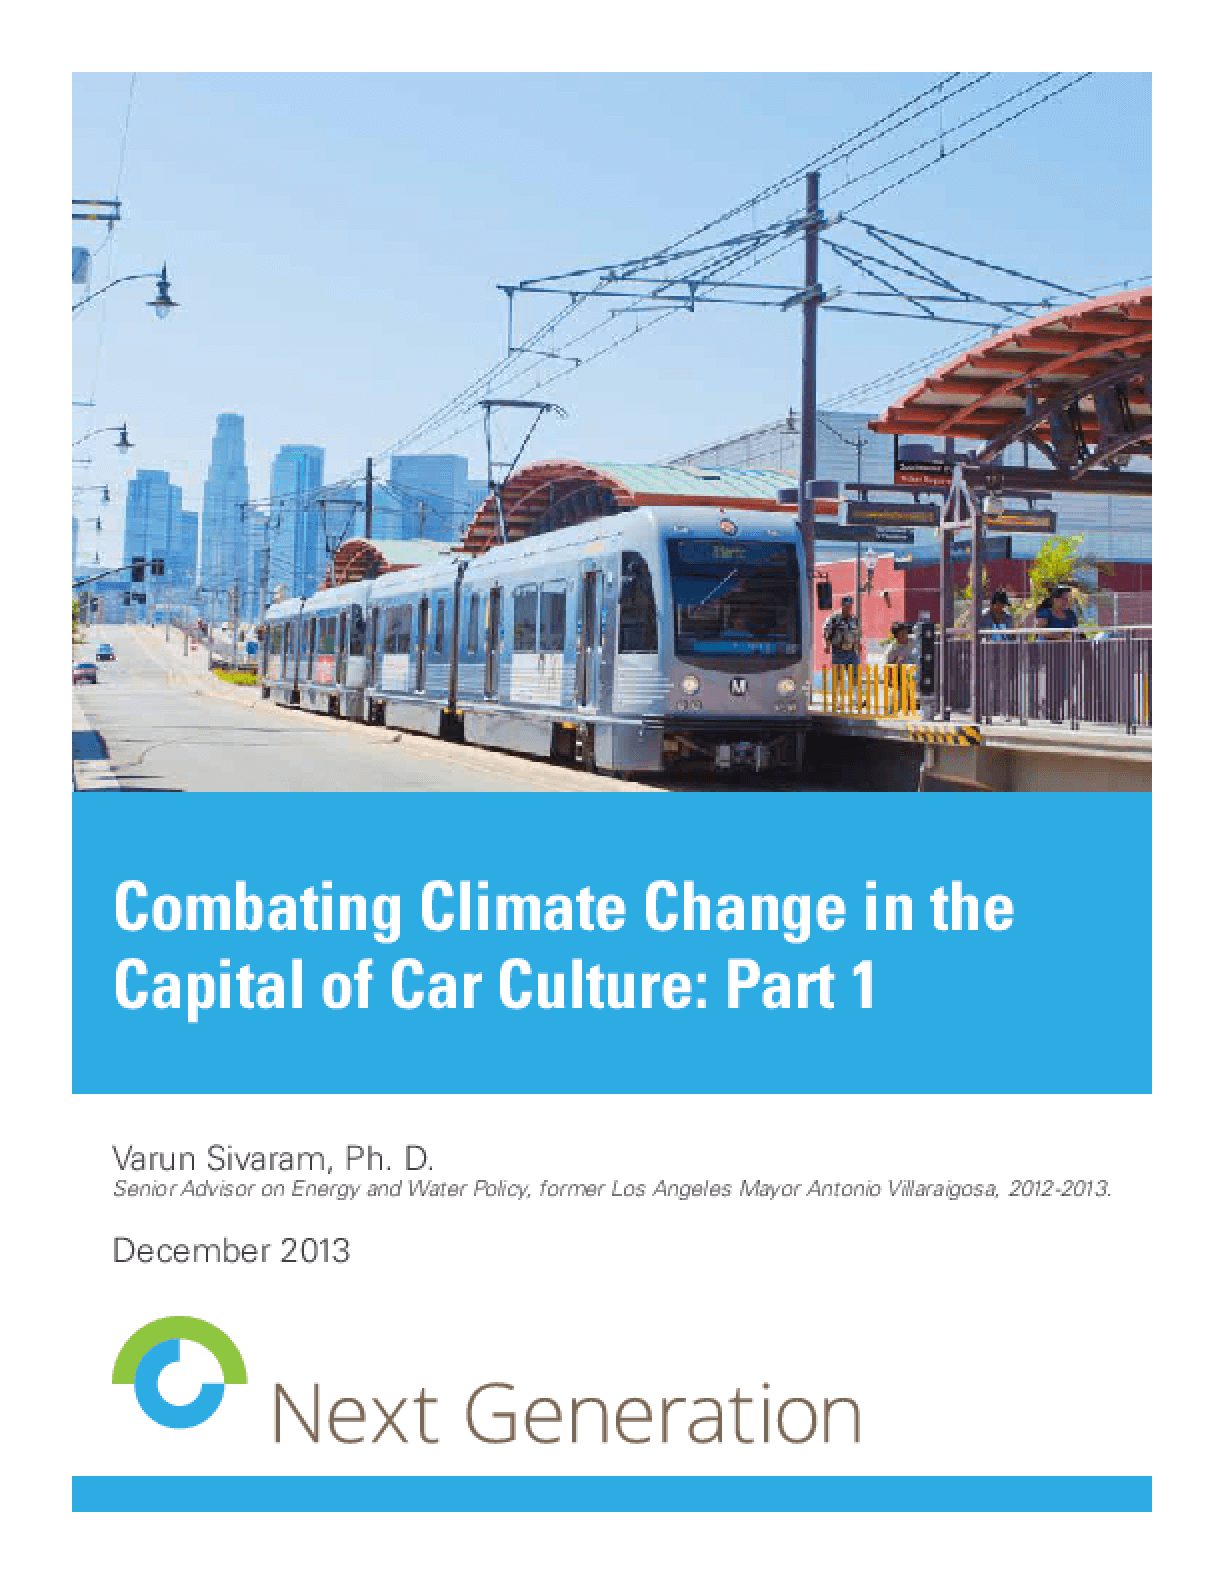 Combating Climate Change in the Capital of Car Culture: Part 1